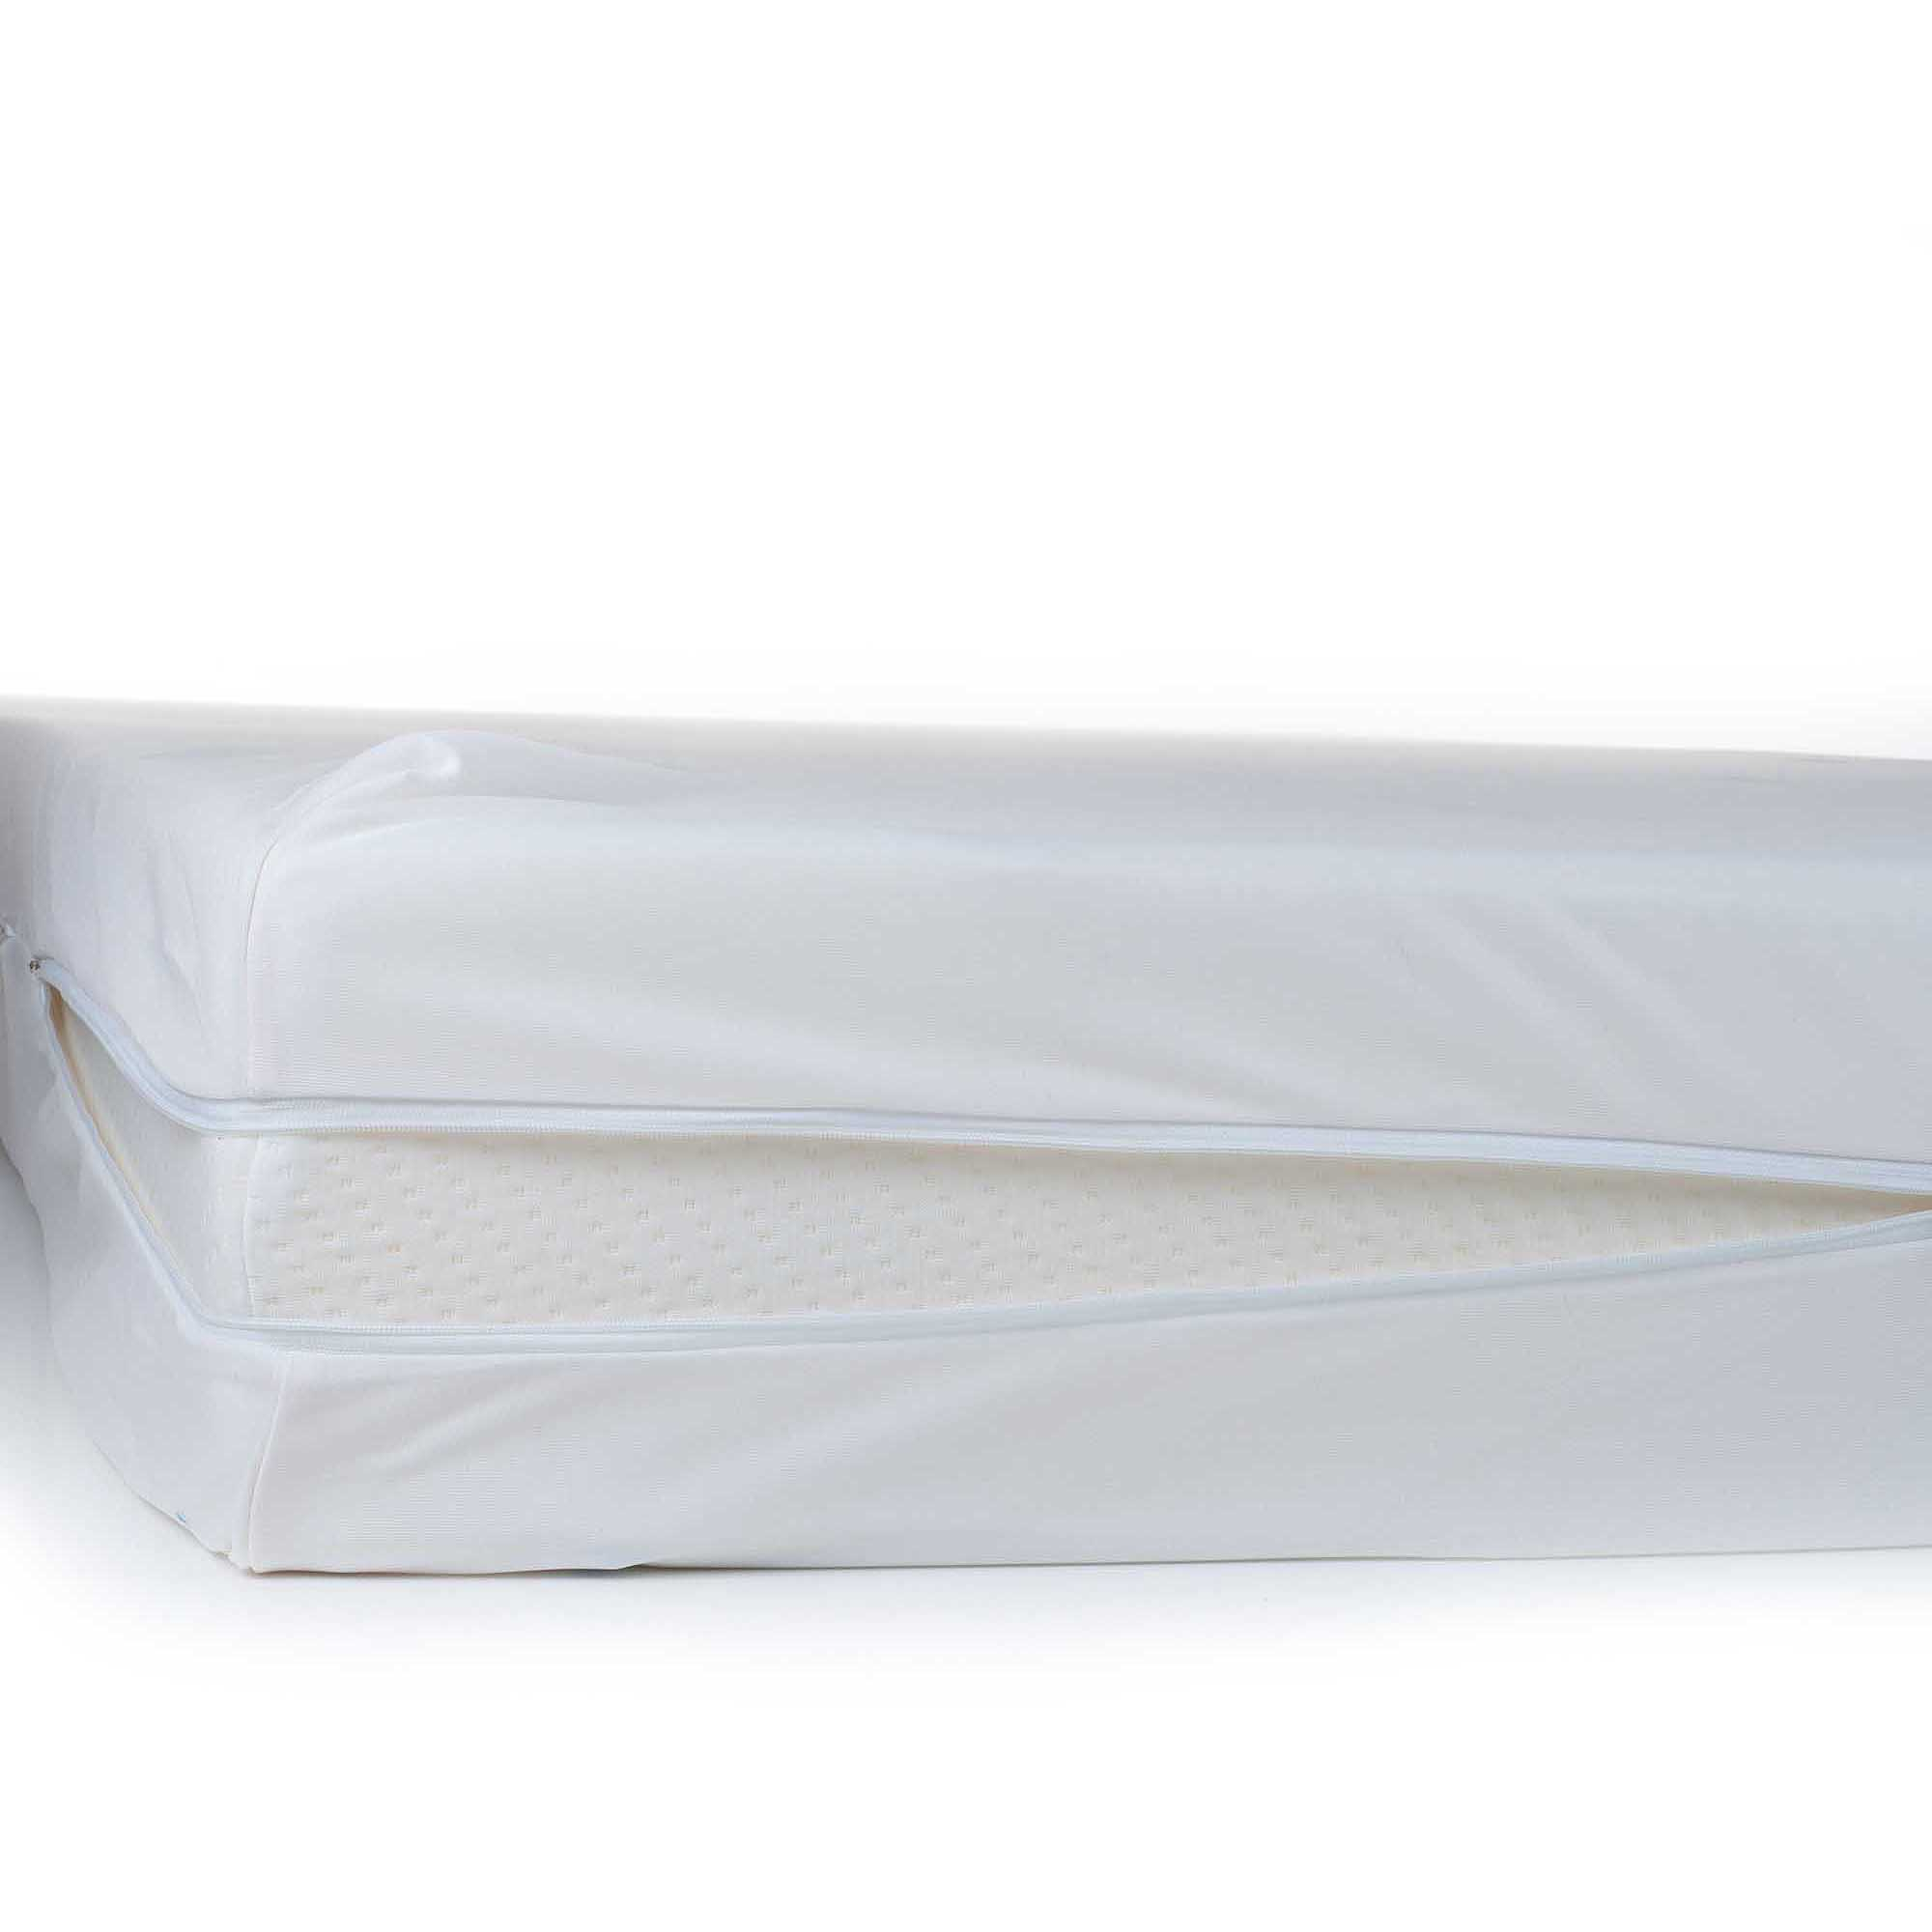 Remedy Bed Bug Certified Mattress Encasement Cover Twin